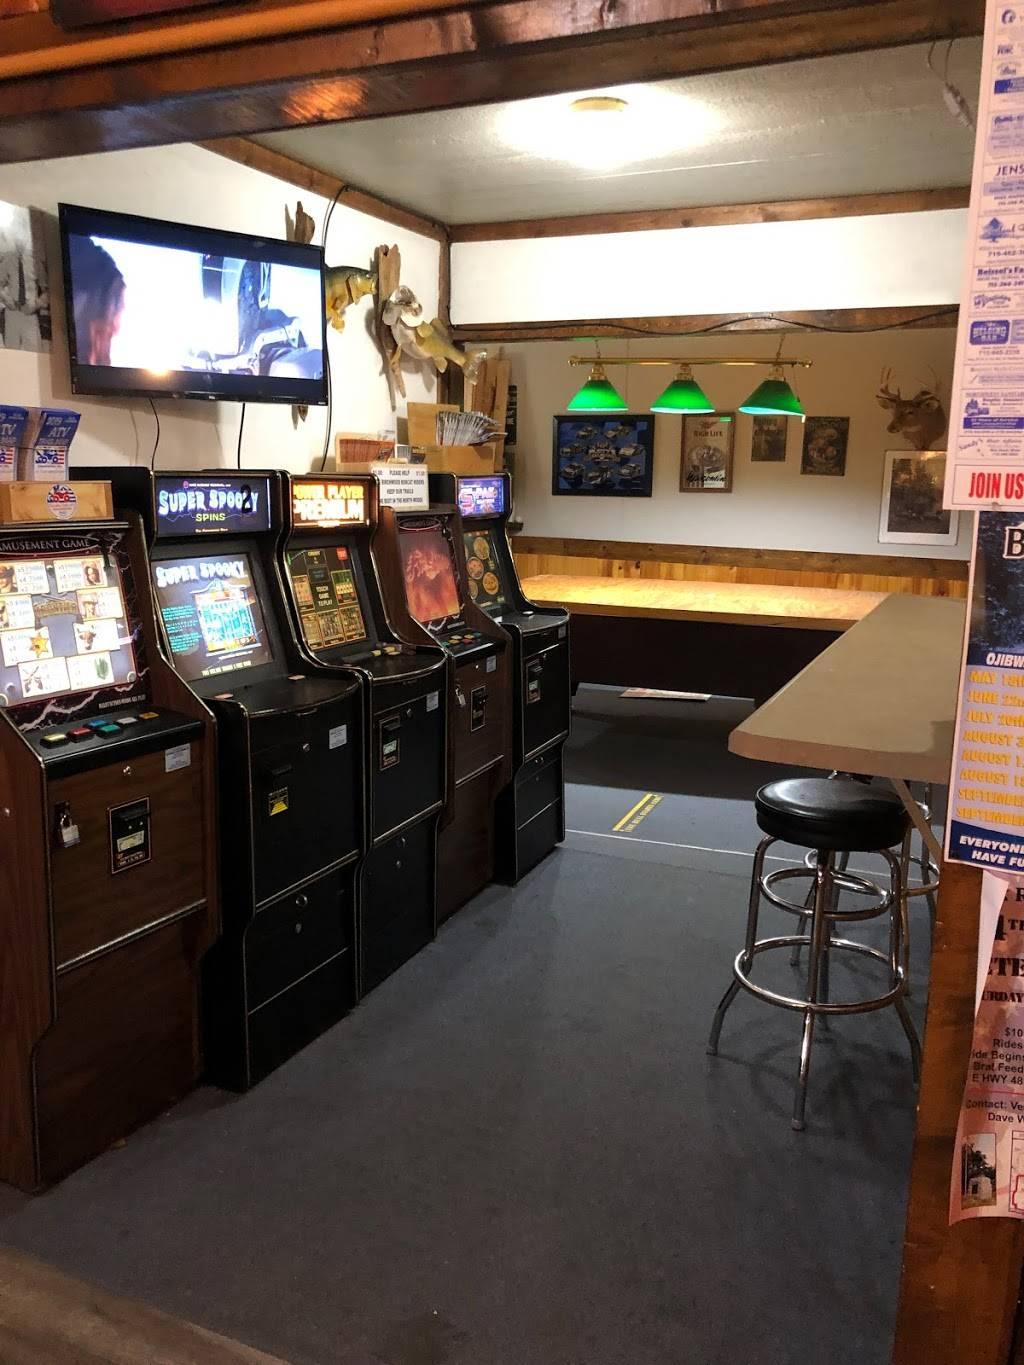 GET HOOKED   restaurant   3697 N Clark St, Radisson, WI 54867, USA   7159452691 OR +1 715-945-2691